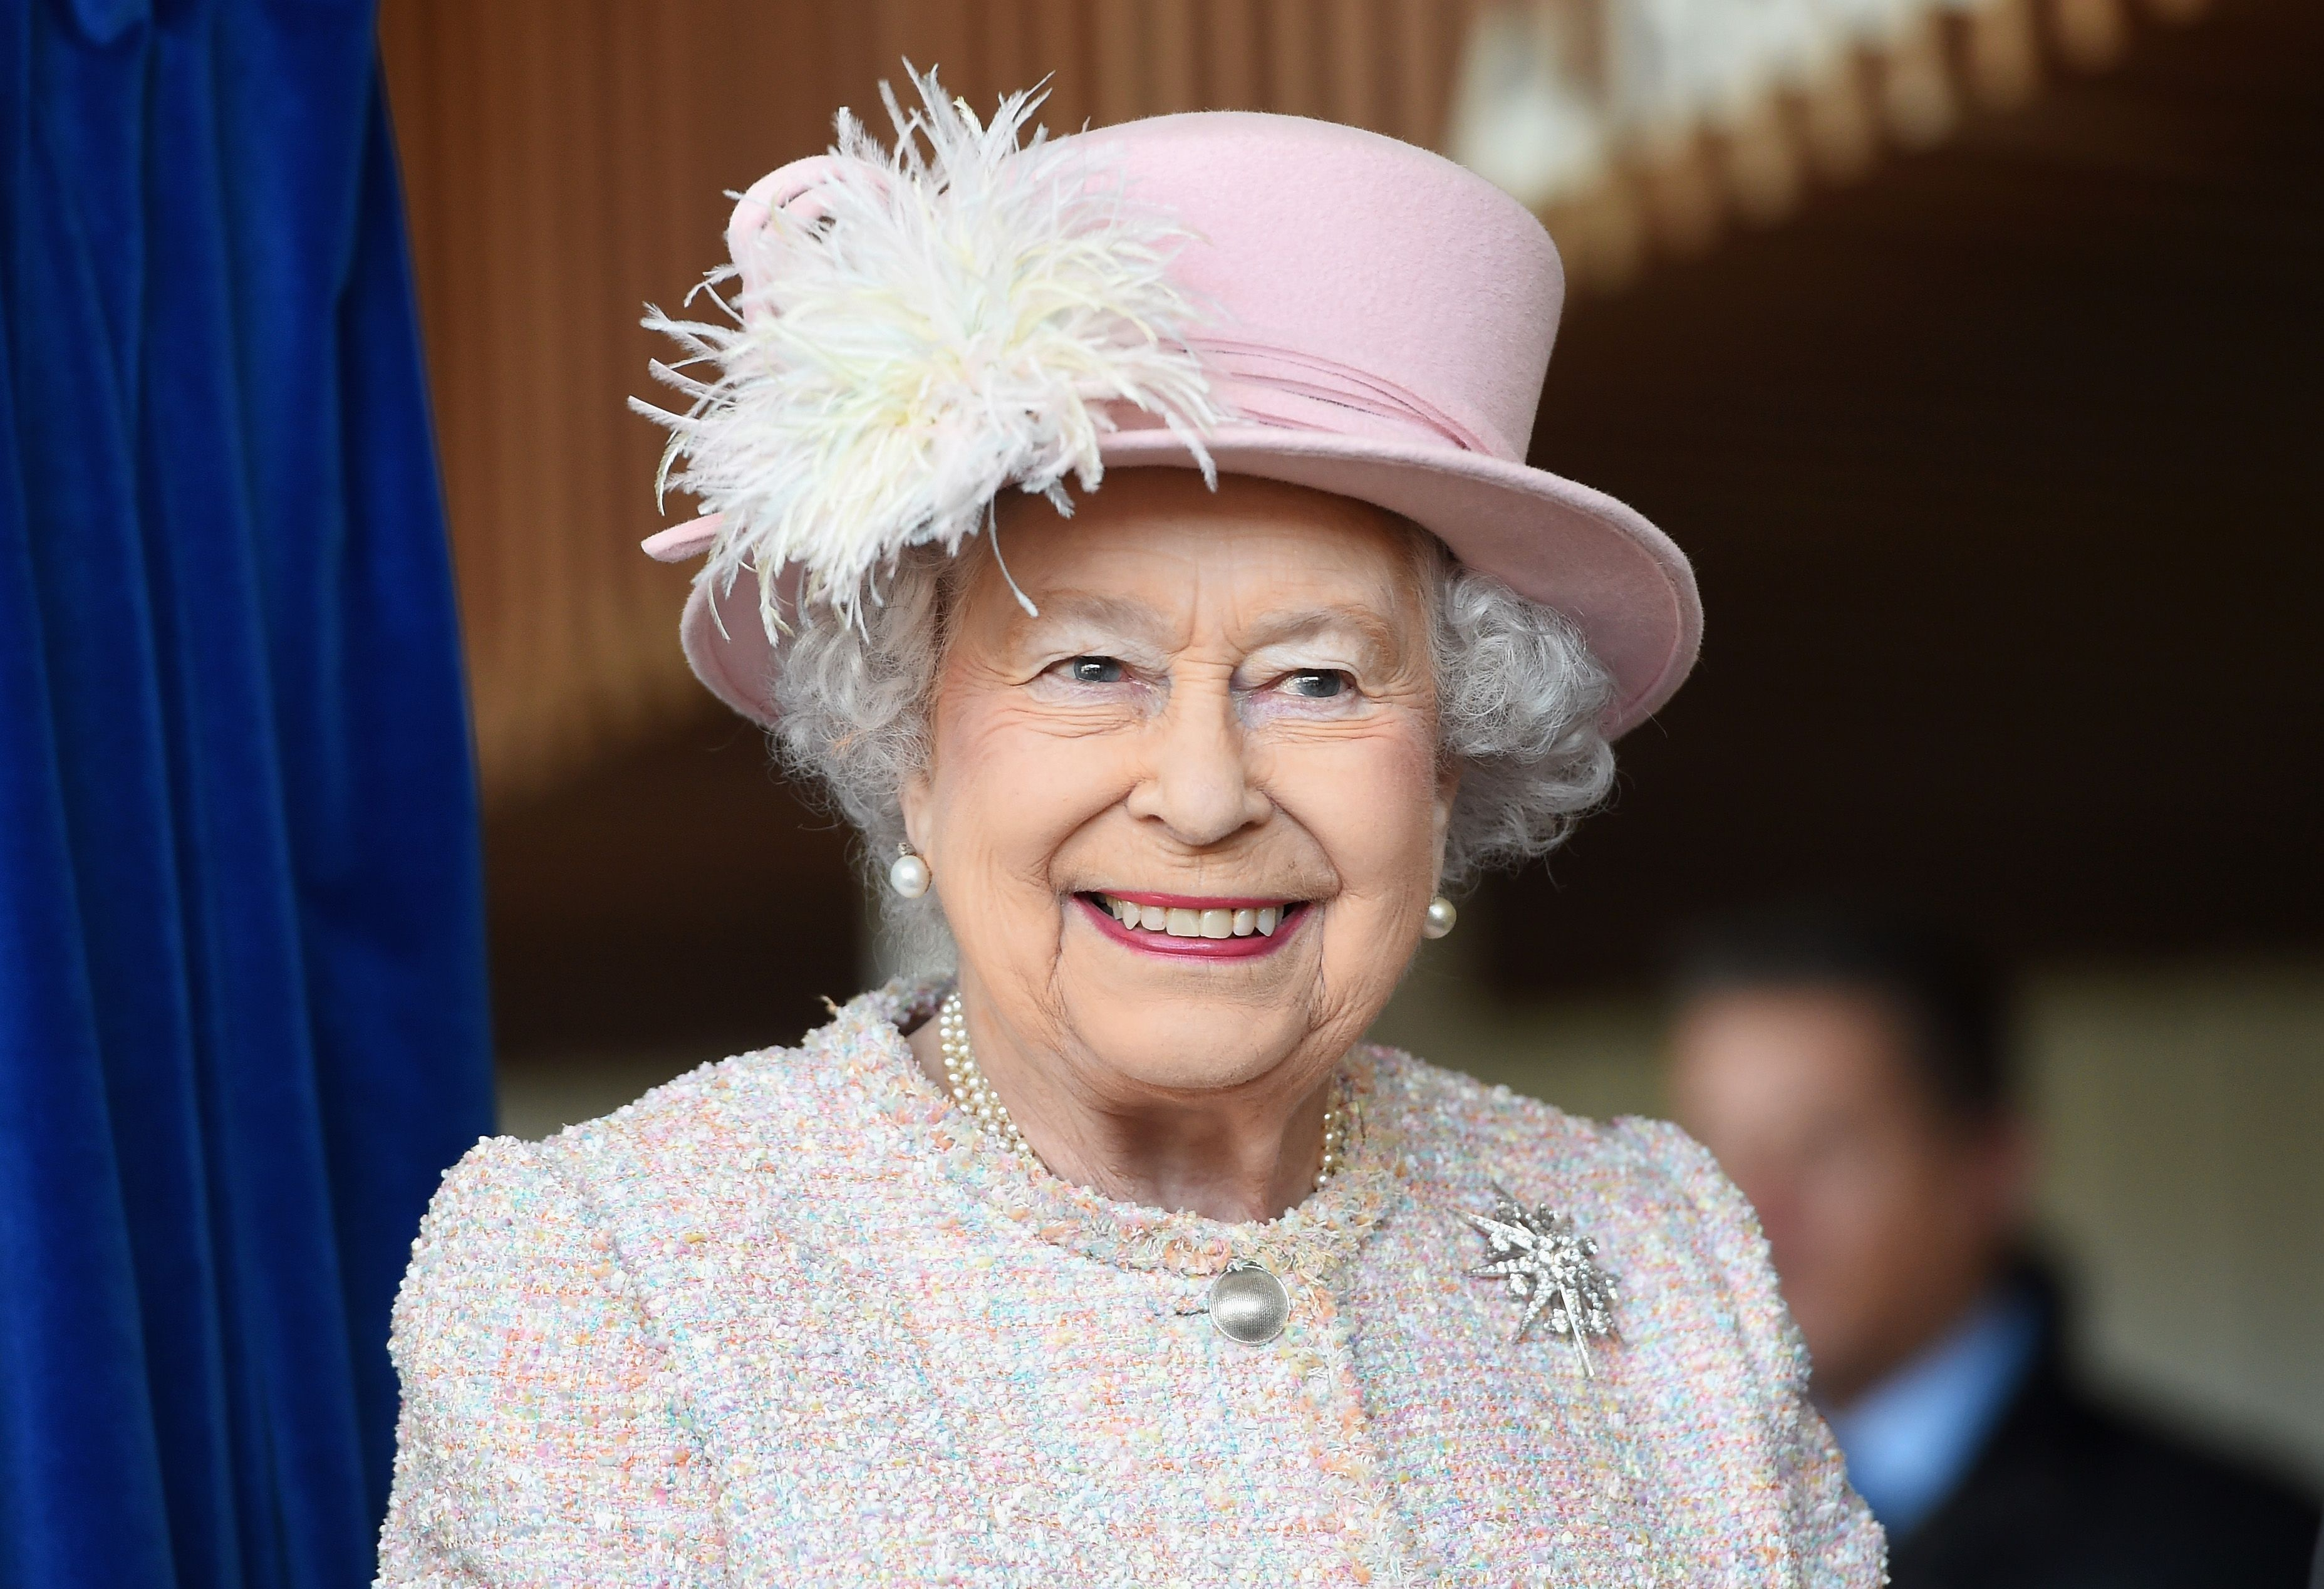 Does Queen Elizabeth II Watch The Crown? Here's What She and the Royals Think